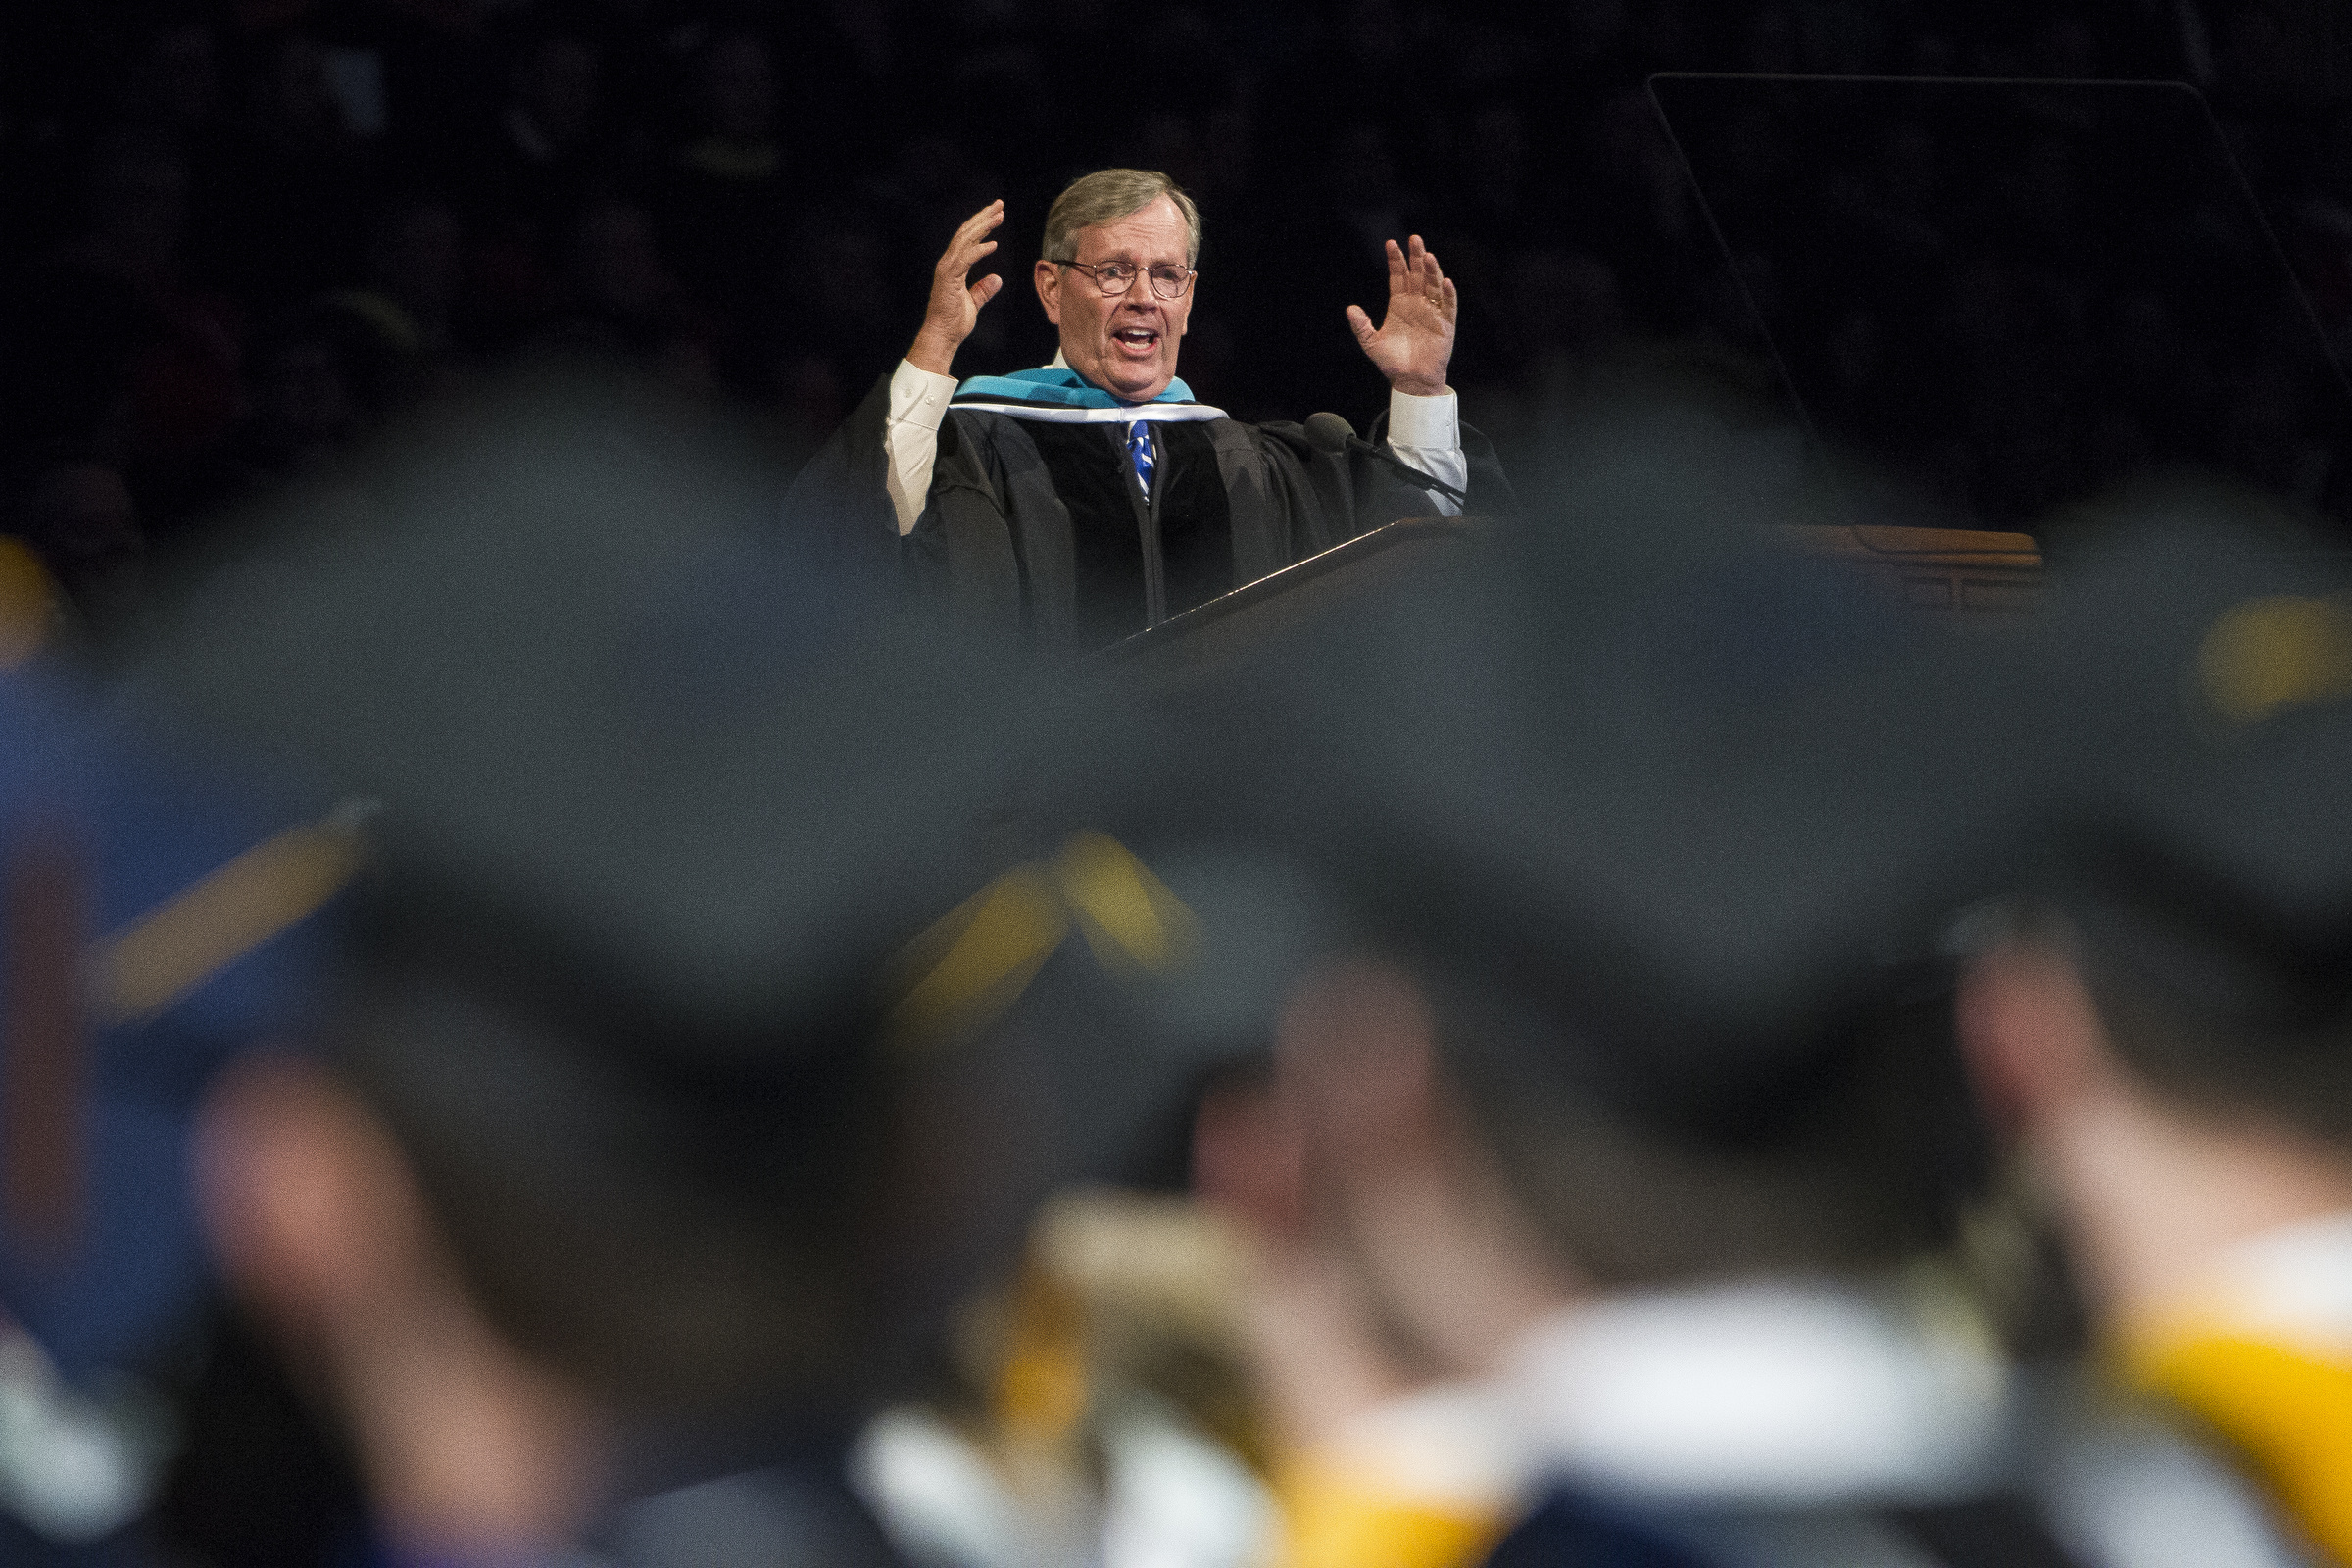 Former Utah Governor Mike Leavitt speaks to graduates after receiving an honorary degree during Brigham Young University's commencement ceremony in the Marriott Center on Thursday, April 26, 2018, in Provo. BYU is awarding nearly 6,300 degrees to graduates this week.